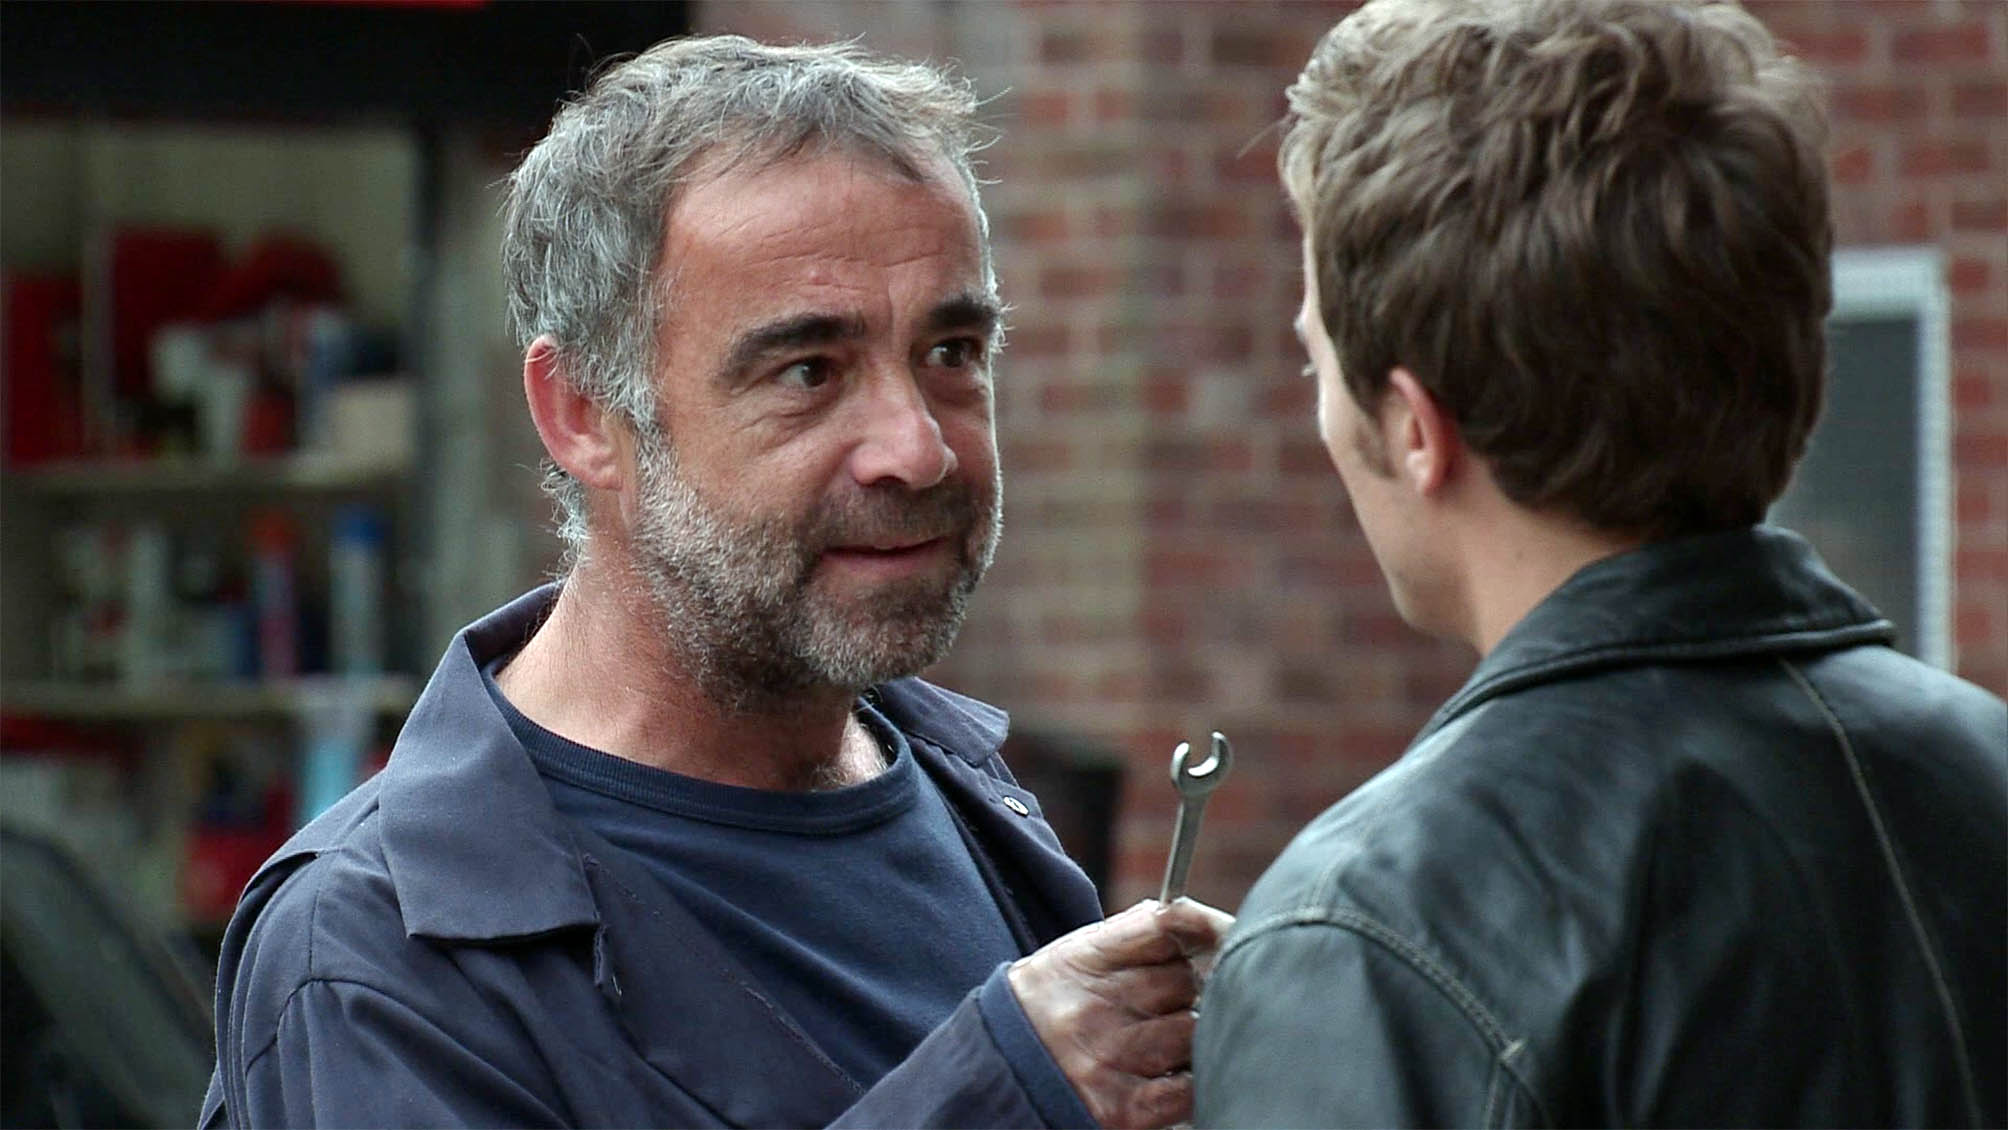 Coronation Street spoilers: Big drama ahead for Kevin Webster as Michael Le Vell 'signs for another year'